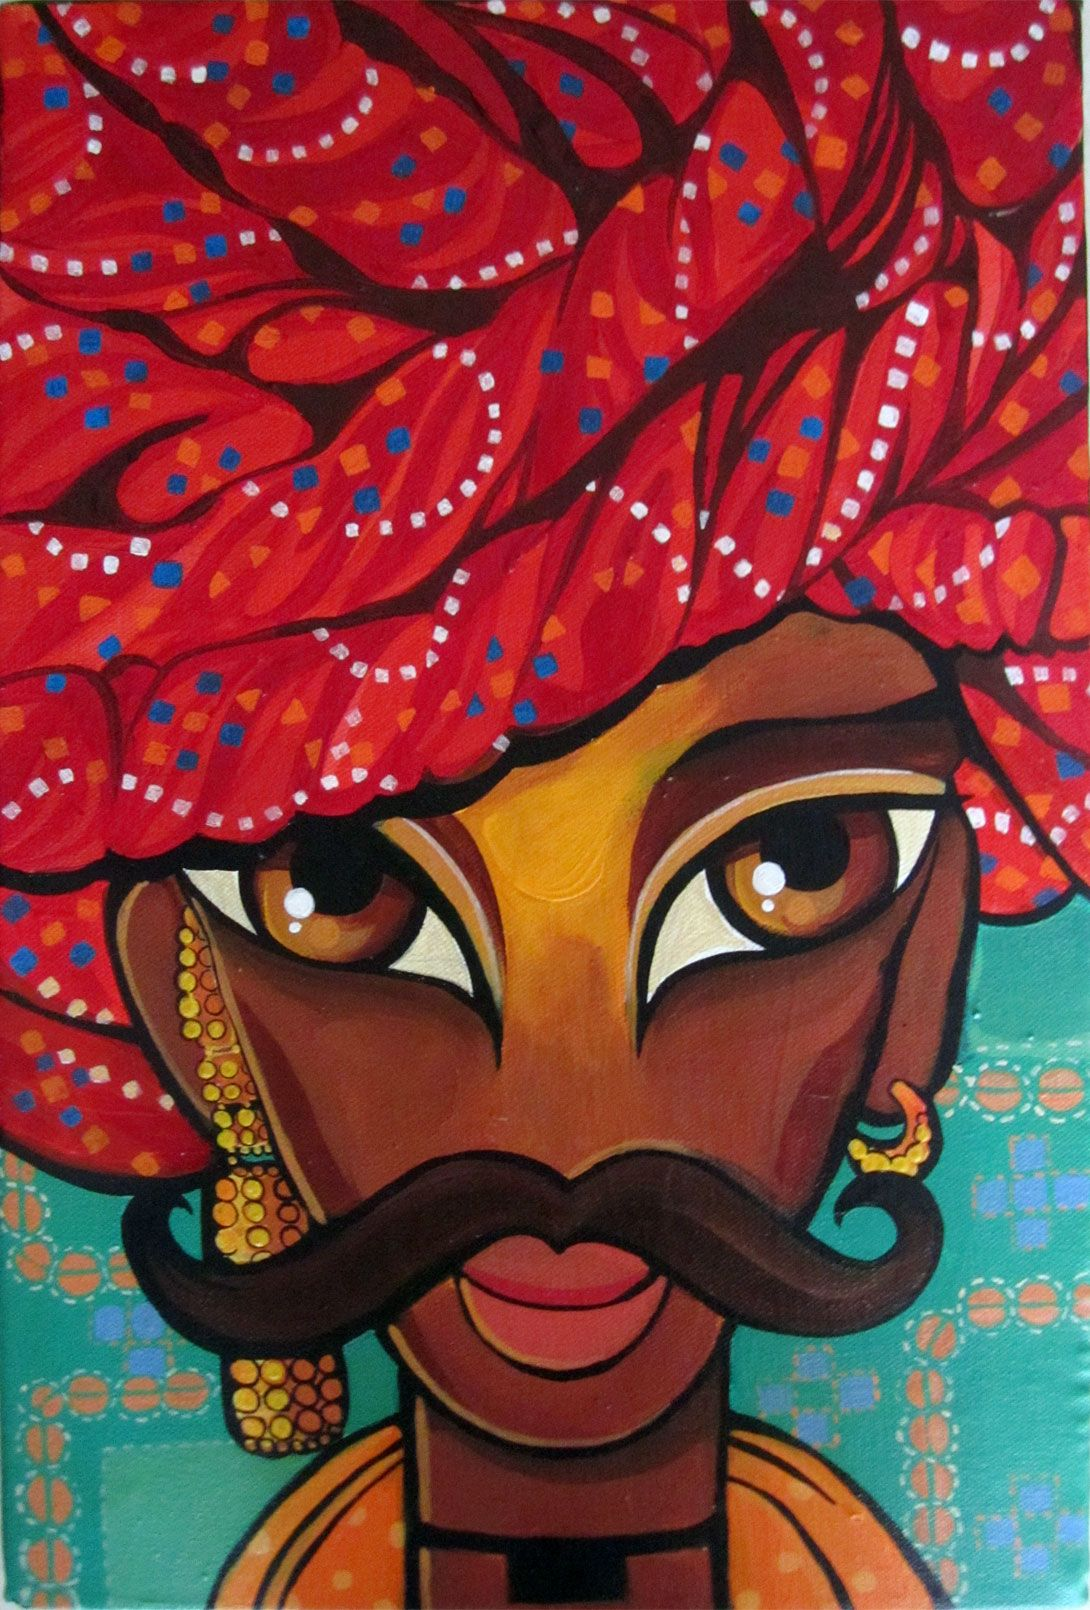 Rajasthani Man 2013 Niloufer Wadia Indian Art Indian Art Paintings Rajasthani Art Indian Art